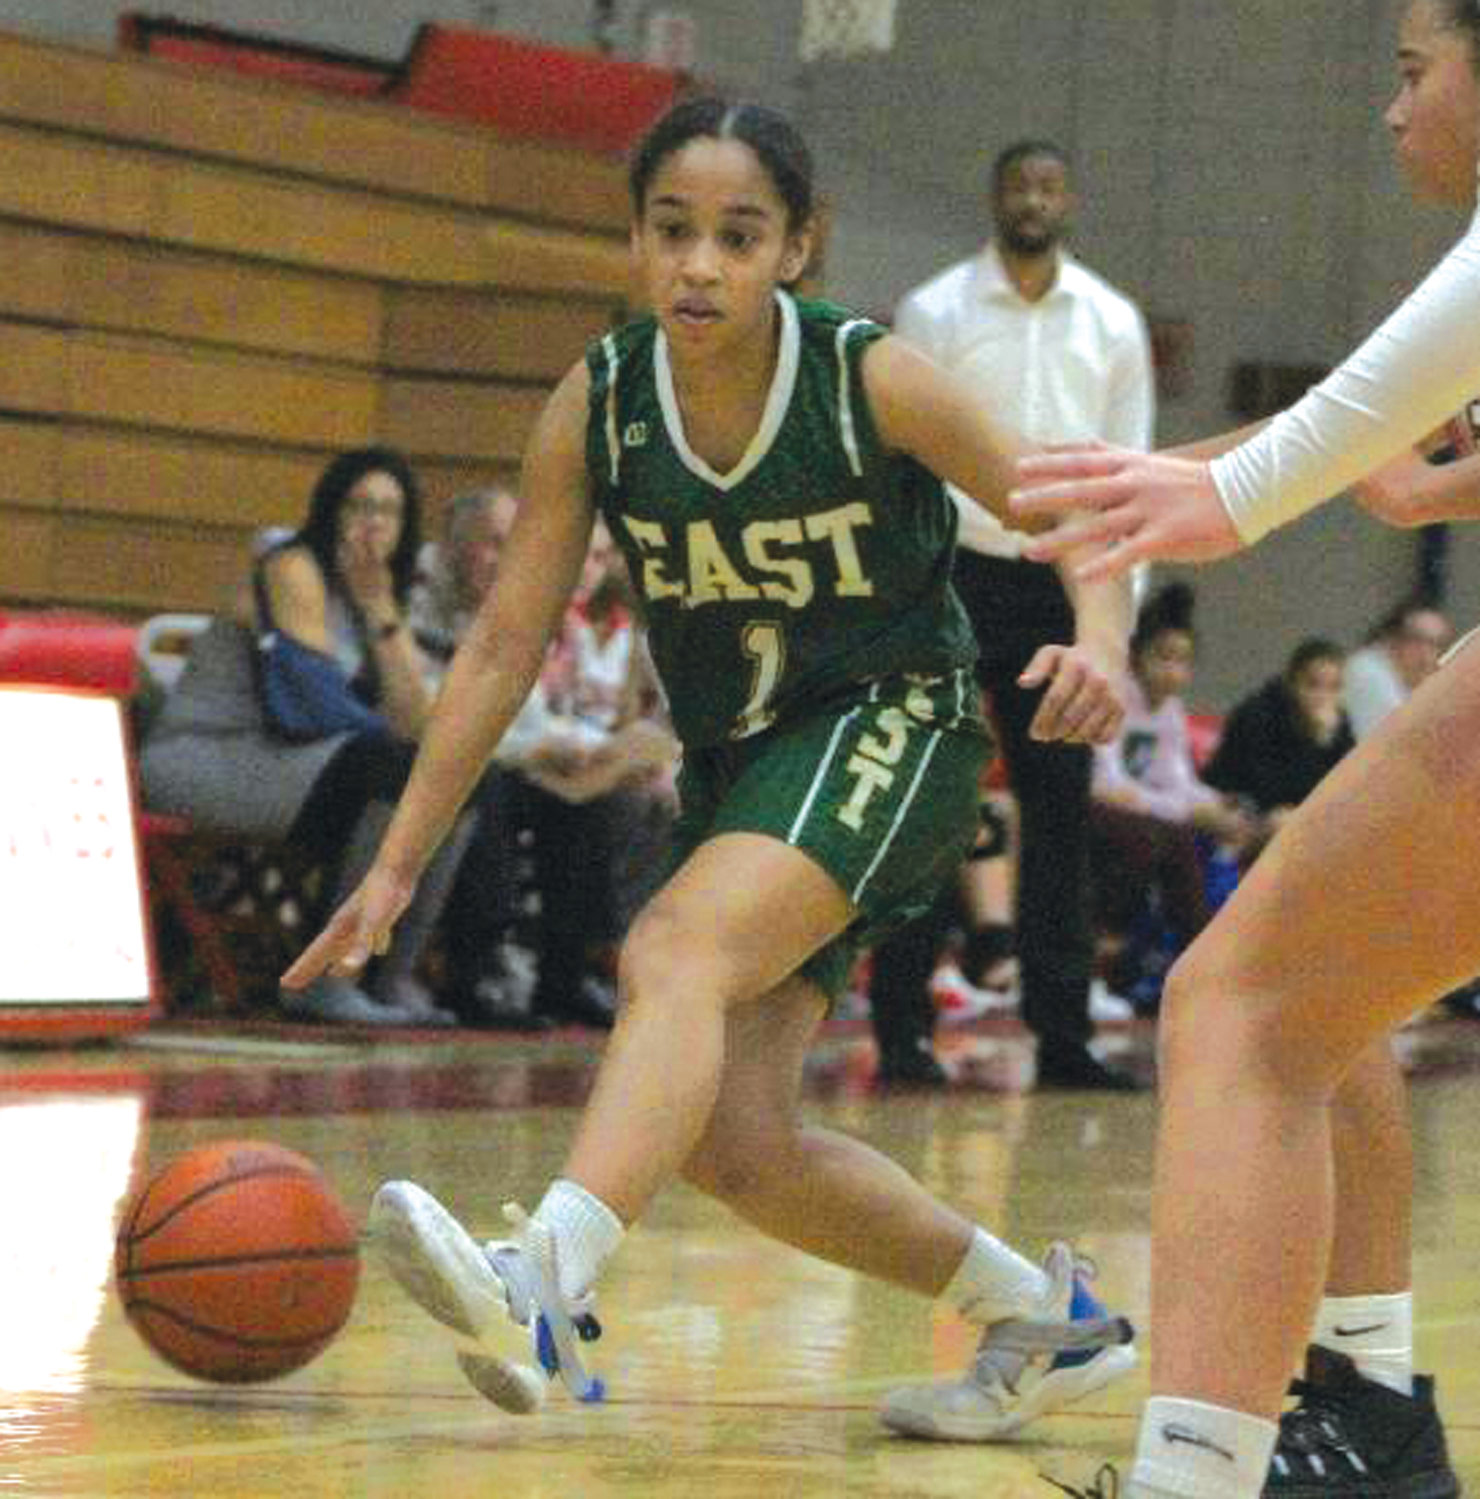 LOOKING FOR SPACE: Cranston East girls basketball player Thamia Perez looks for space to work against East Providence during the teams' season opener on Monday evening at EP. The Townies sunk a buzzer-beater to wrap up the 41-39 win and hand the Thunderbolts their first loss of the season.